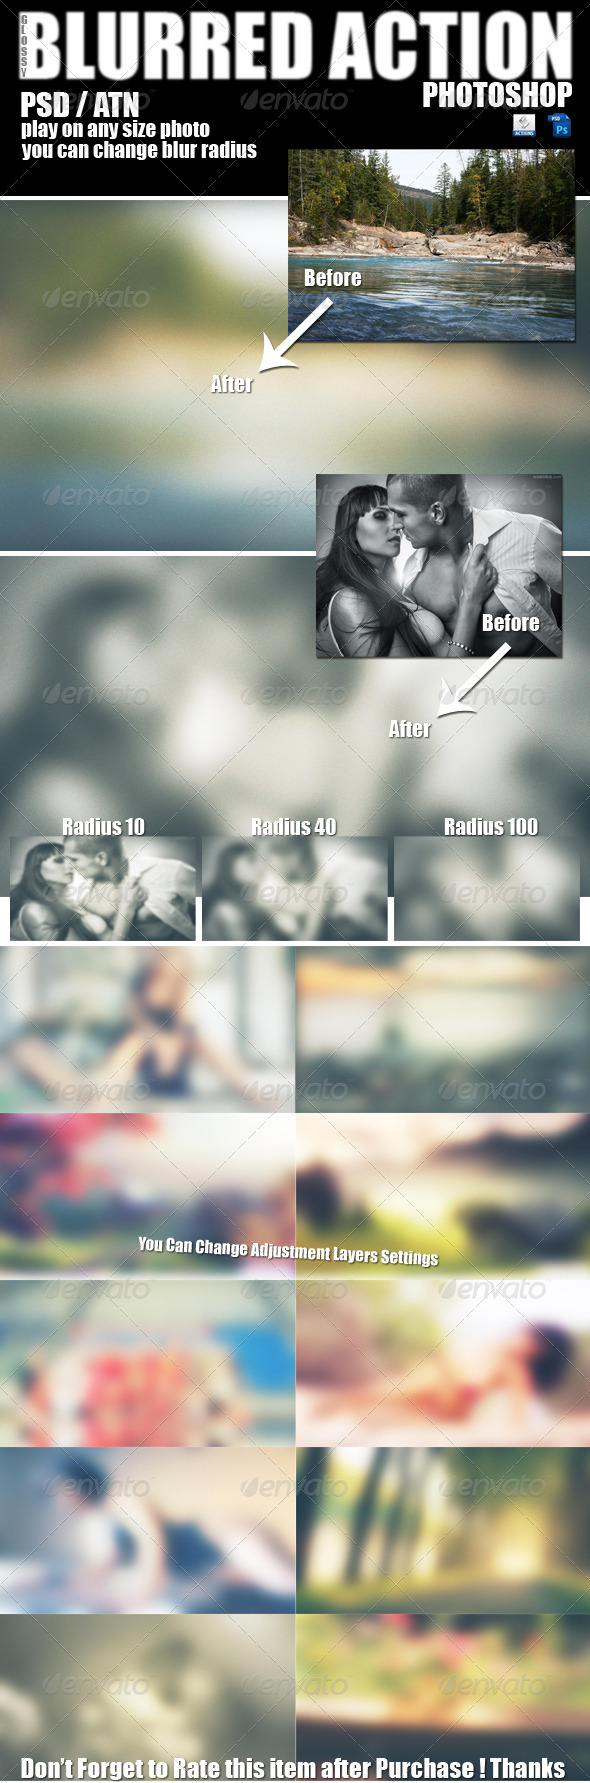 GraphicRiver Blurred Action 1 2418643